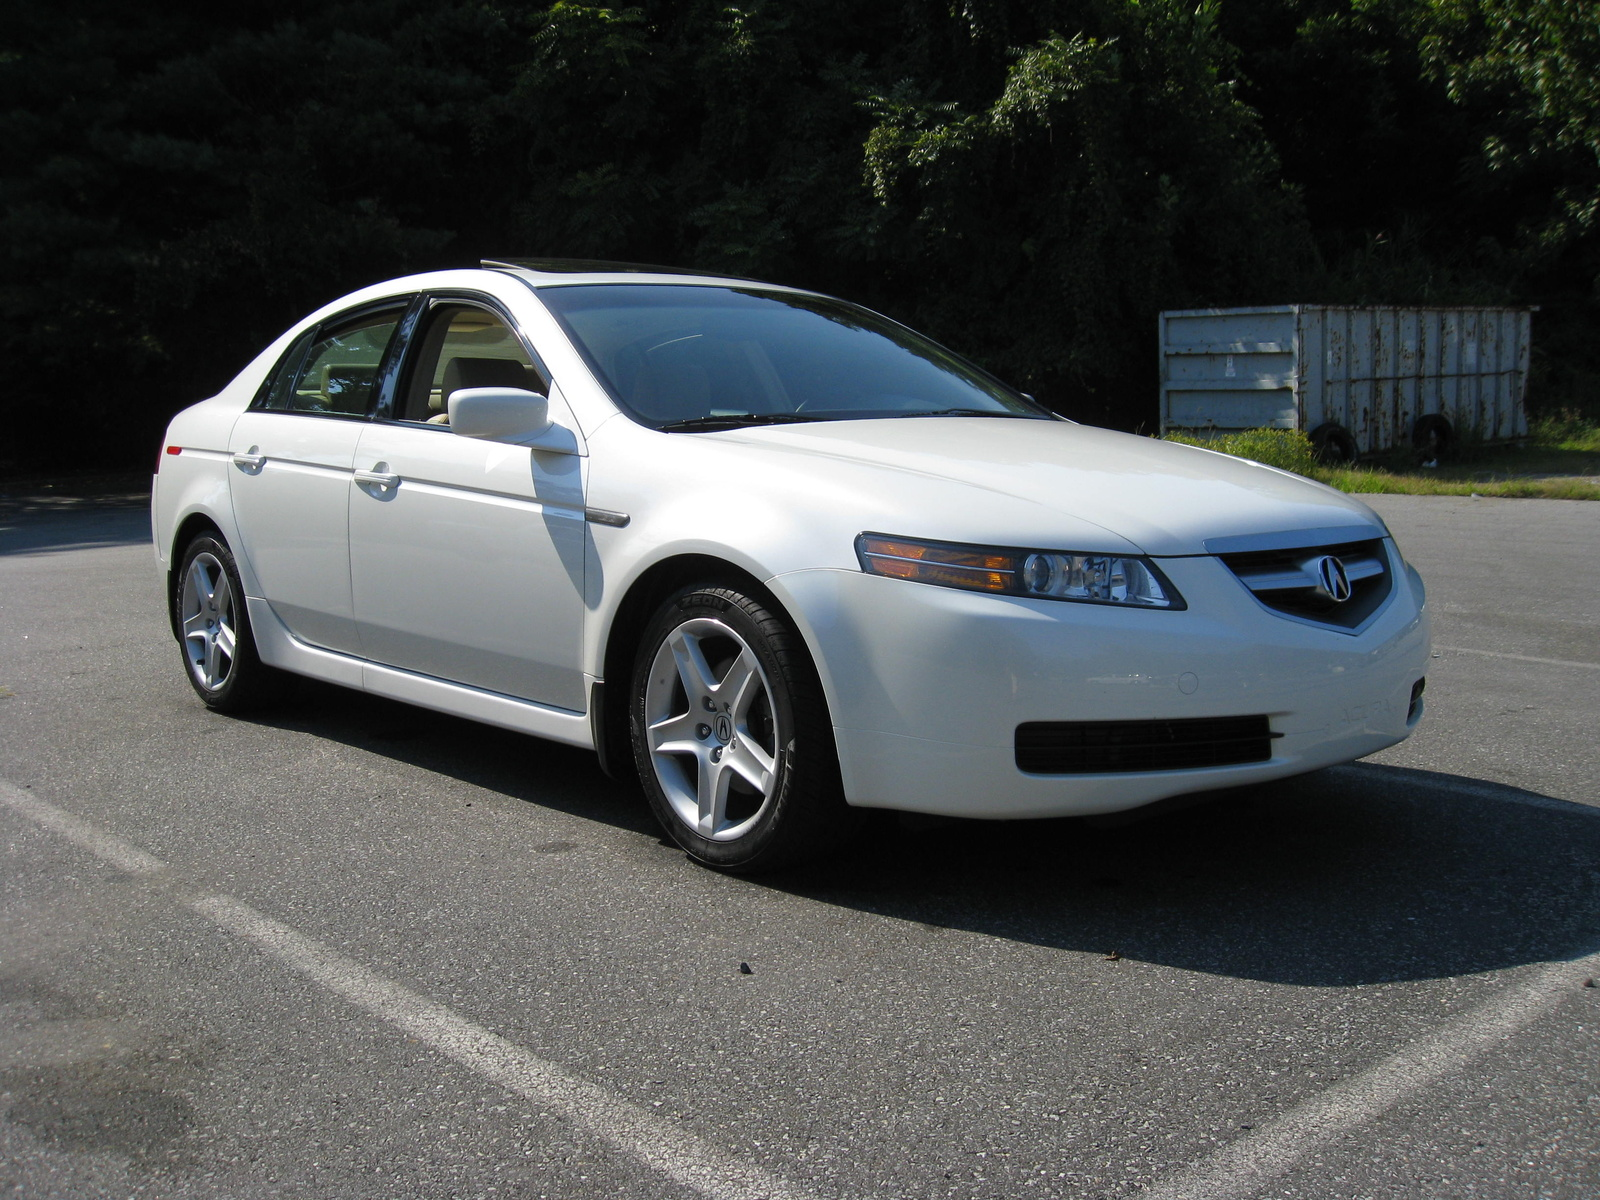 2004 Acura TL 5-Spd AT w/Navigation picture